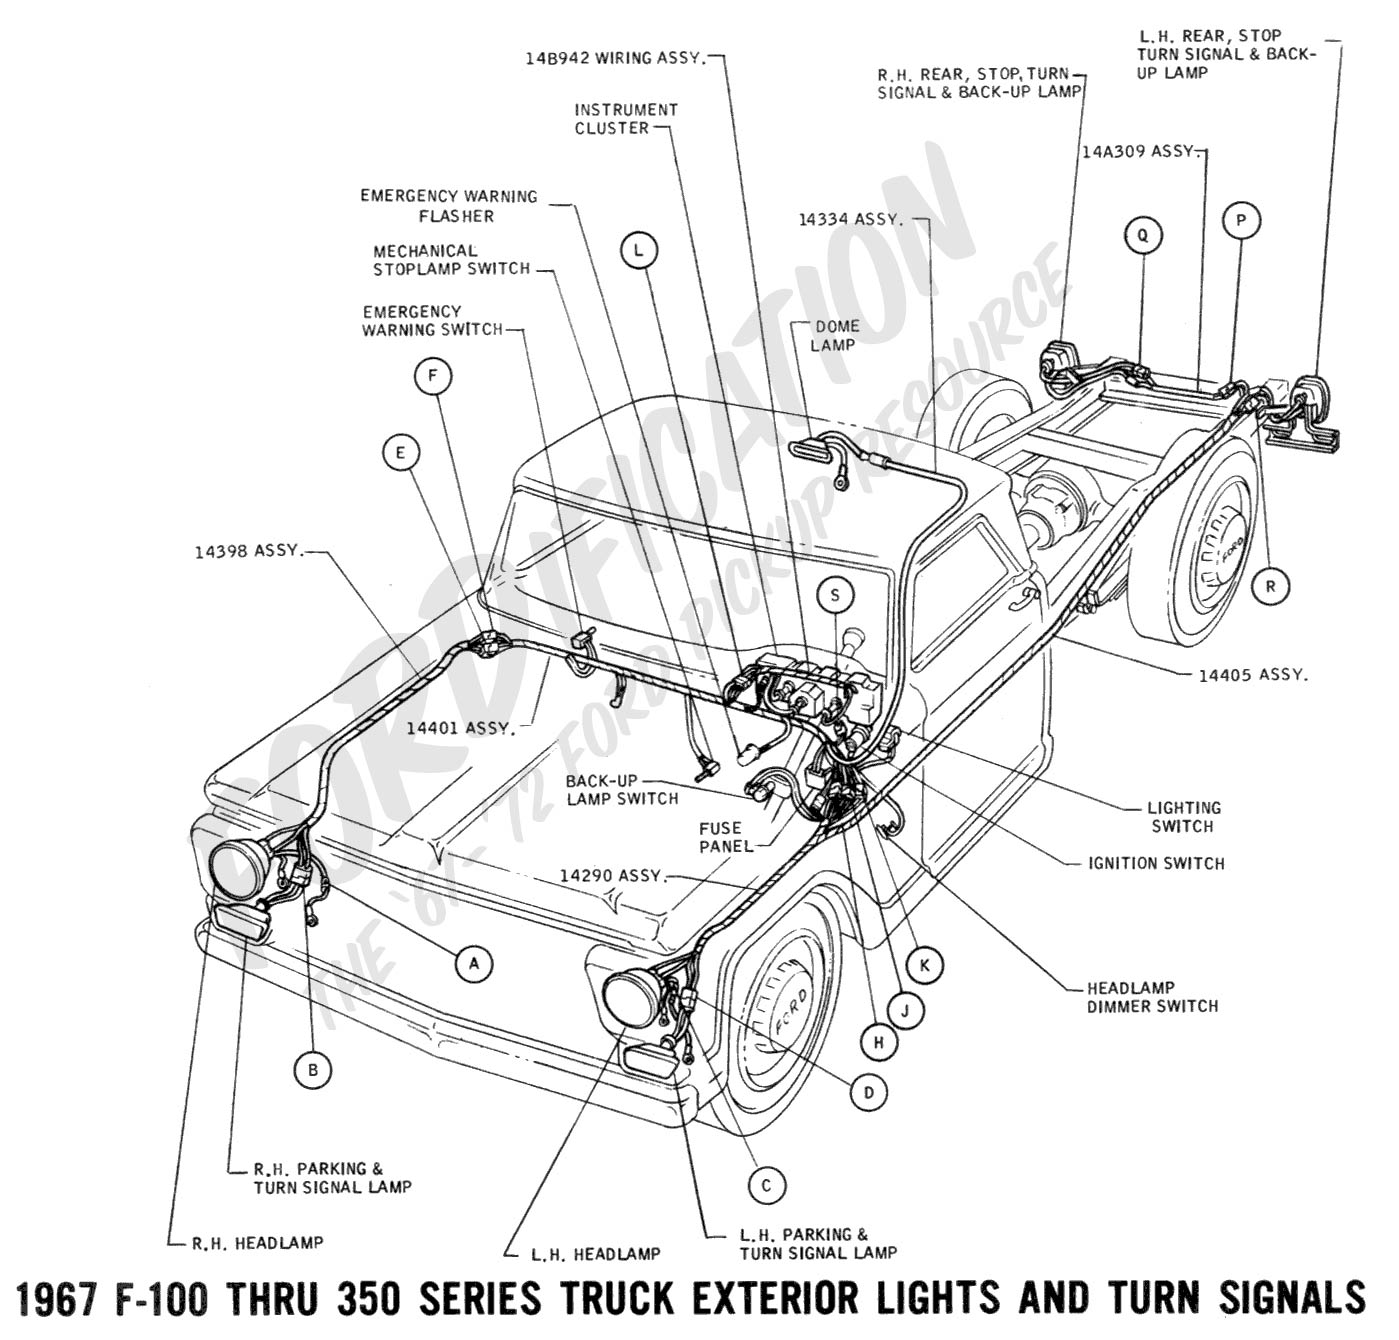 1984 F150 Starter Wiring Diagram 94 Turn Signal Schematics Diagrams Ford Truck Technical Drawings And Section H Rh Fordification Com 1994 Fuel Pump